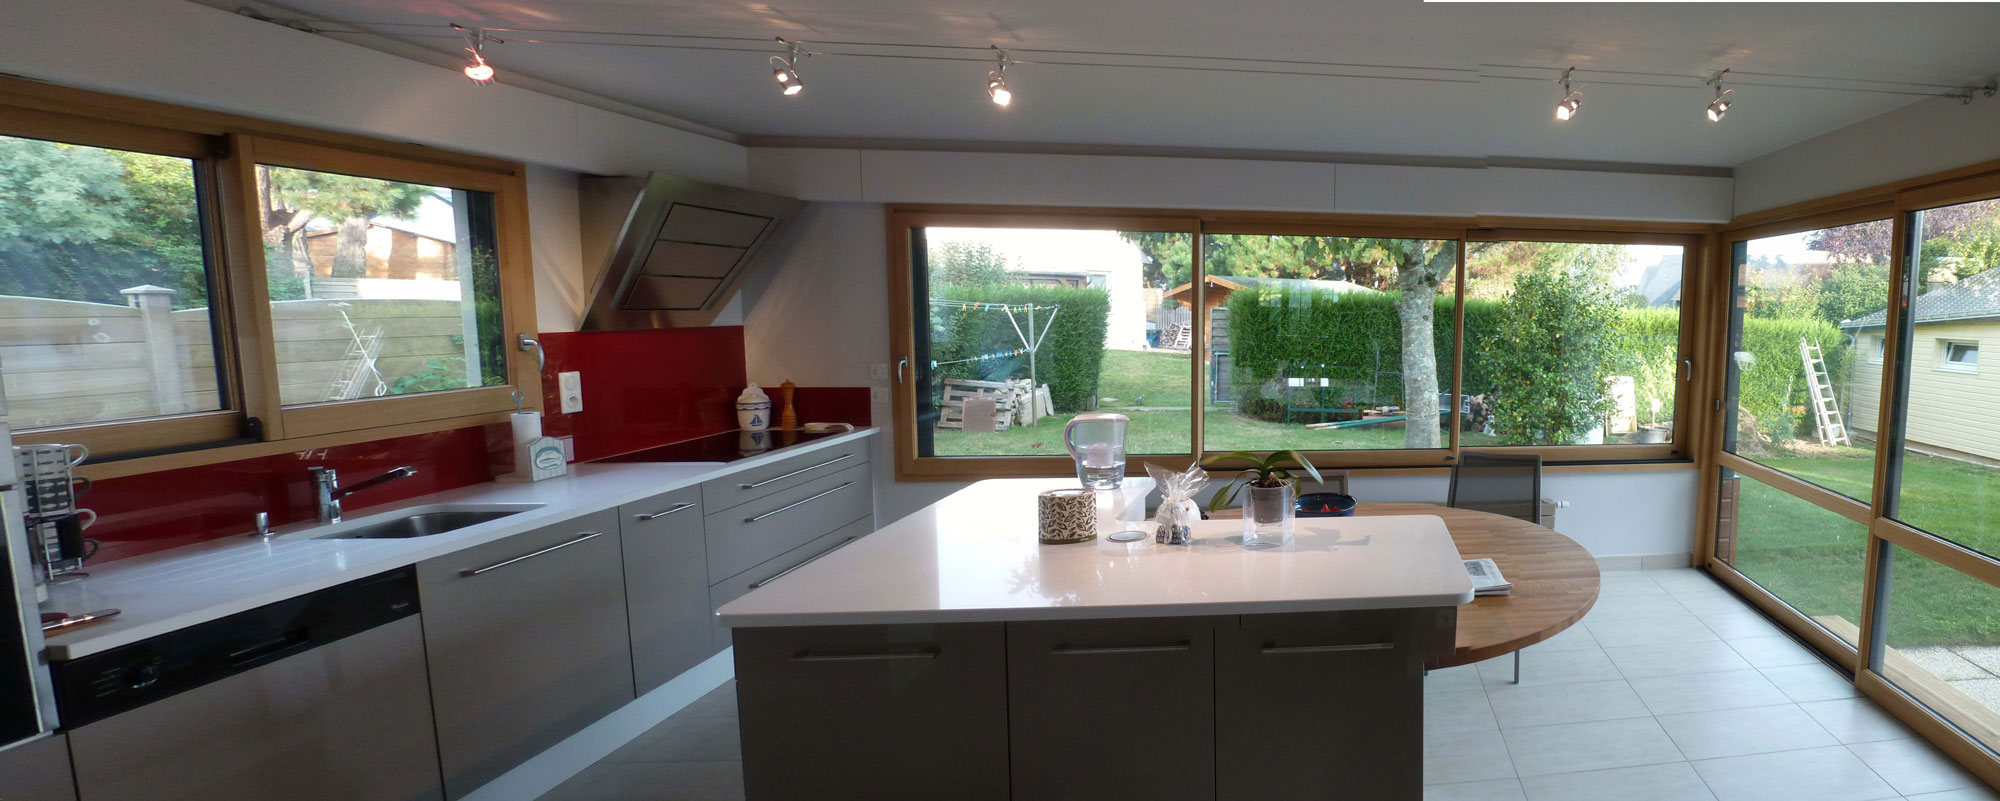 R novation de pavillon couedel design morbihan - Extension cuisine ...